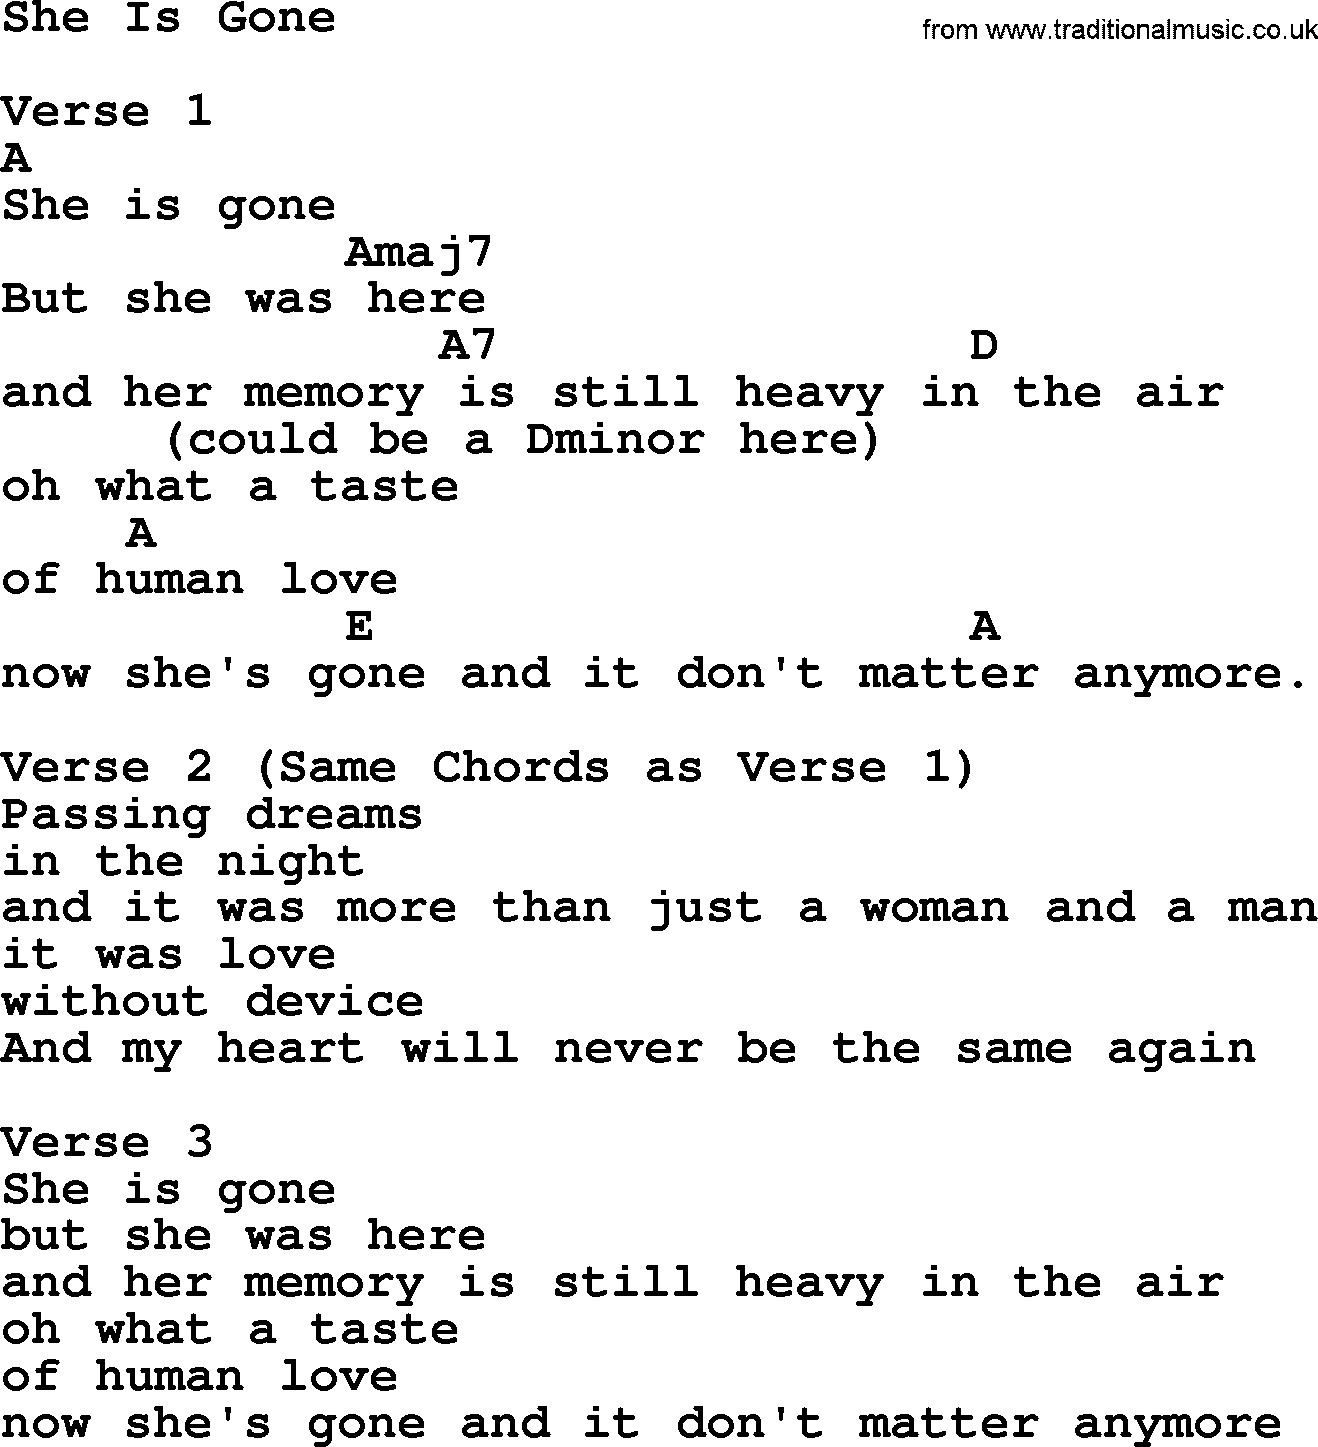 Willie Nelson song  She Is Gone  lyrics and chords. Nelson song  She Is Gone  lyrics and chords